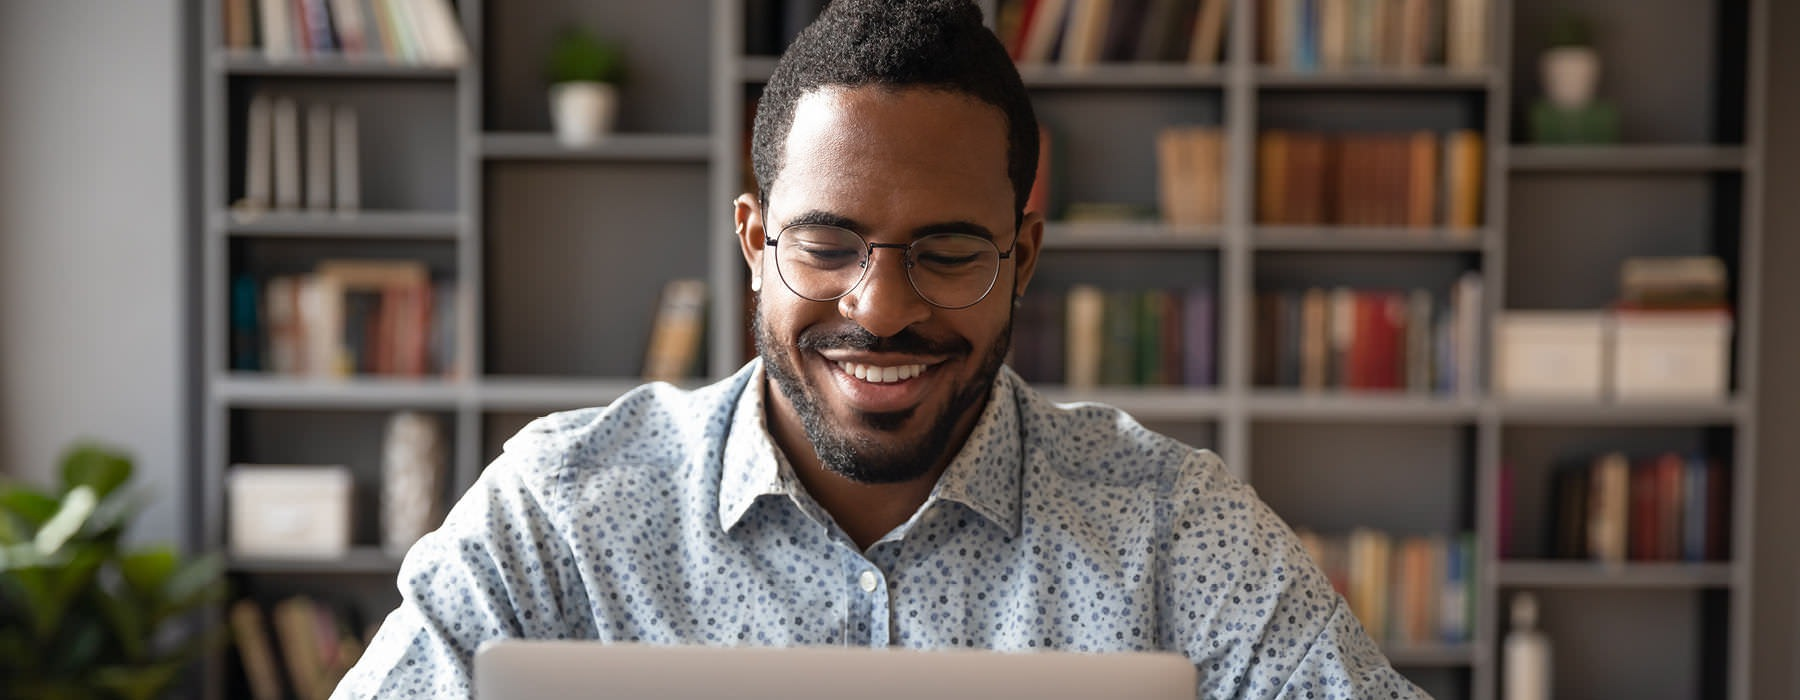 happy, young man works on his laptop in a room with bookshelves and plants